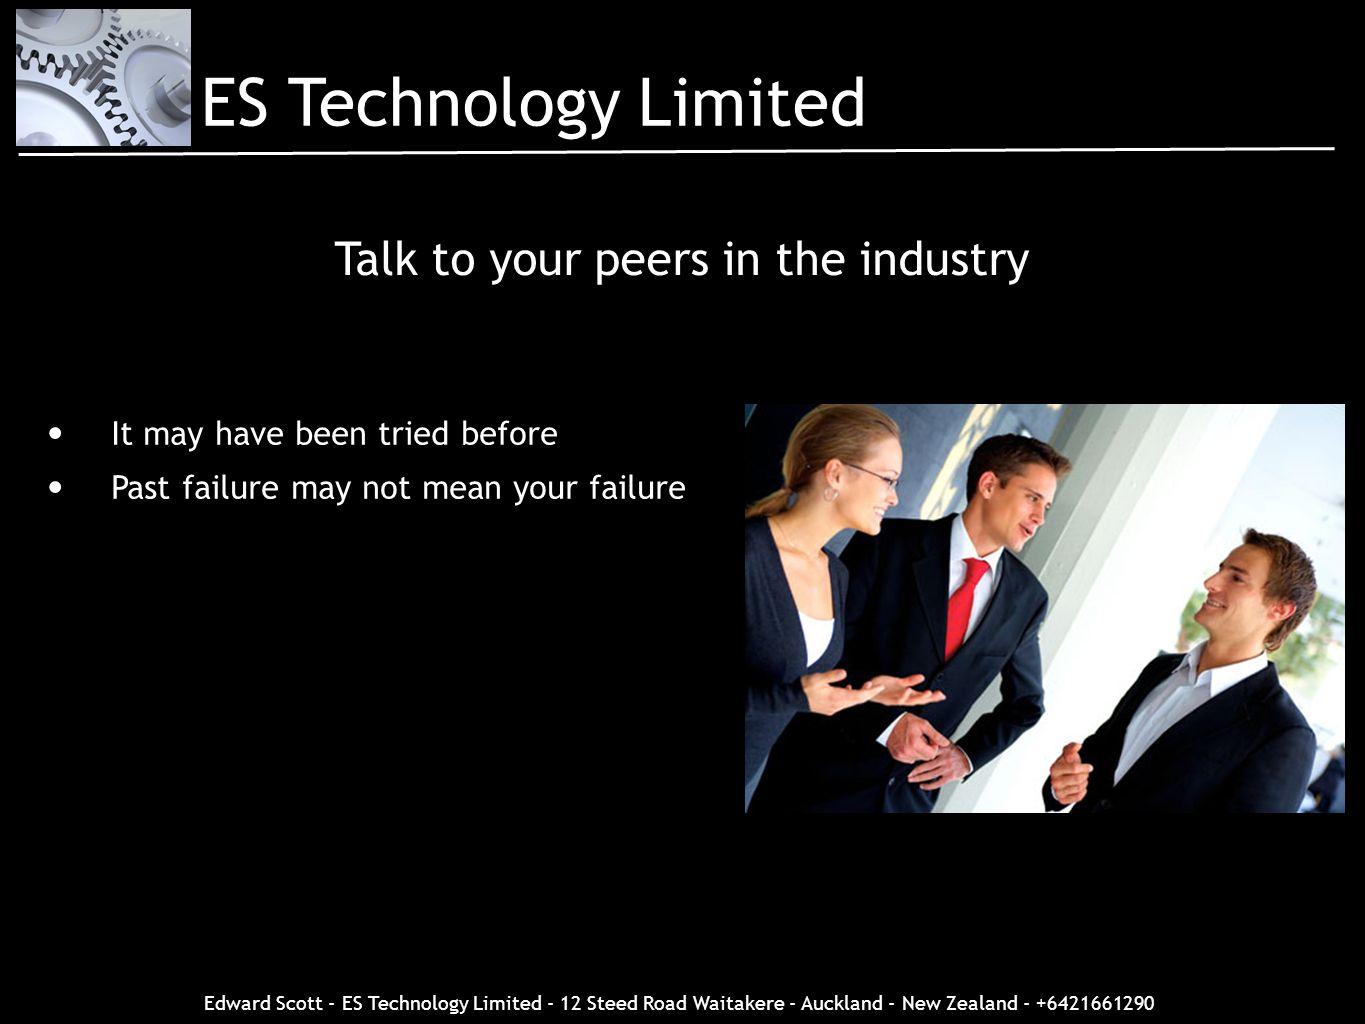 Edward Scott - ES Technology Limited - 12 Steed Road Waitakere - Auckland - New Zealand - +6421661290 Talk to your peers in the industry It may have b